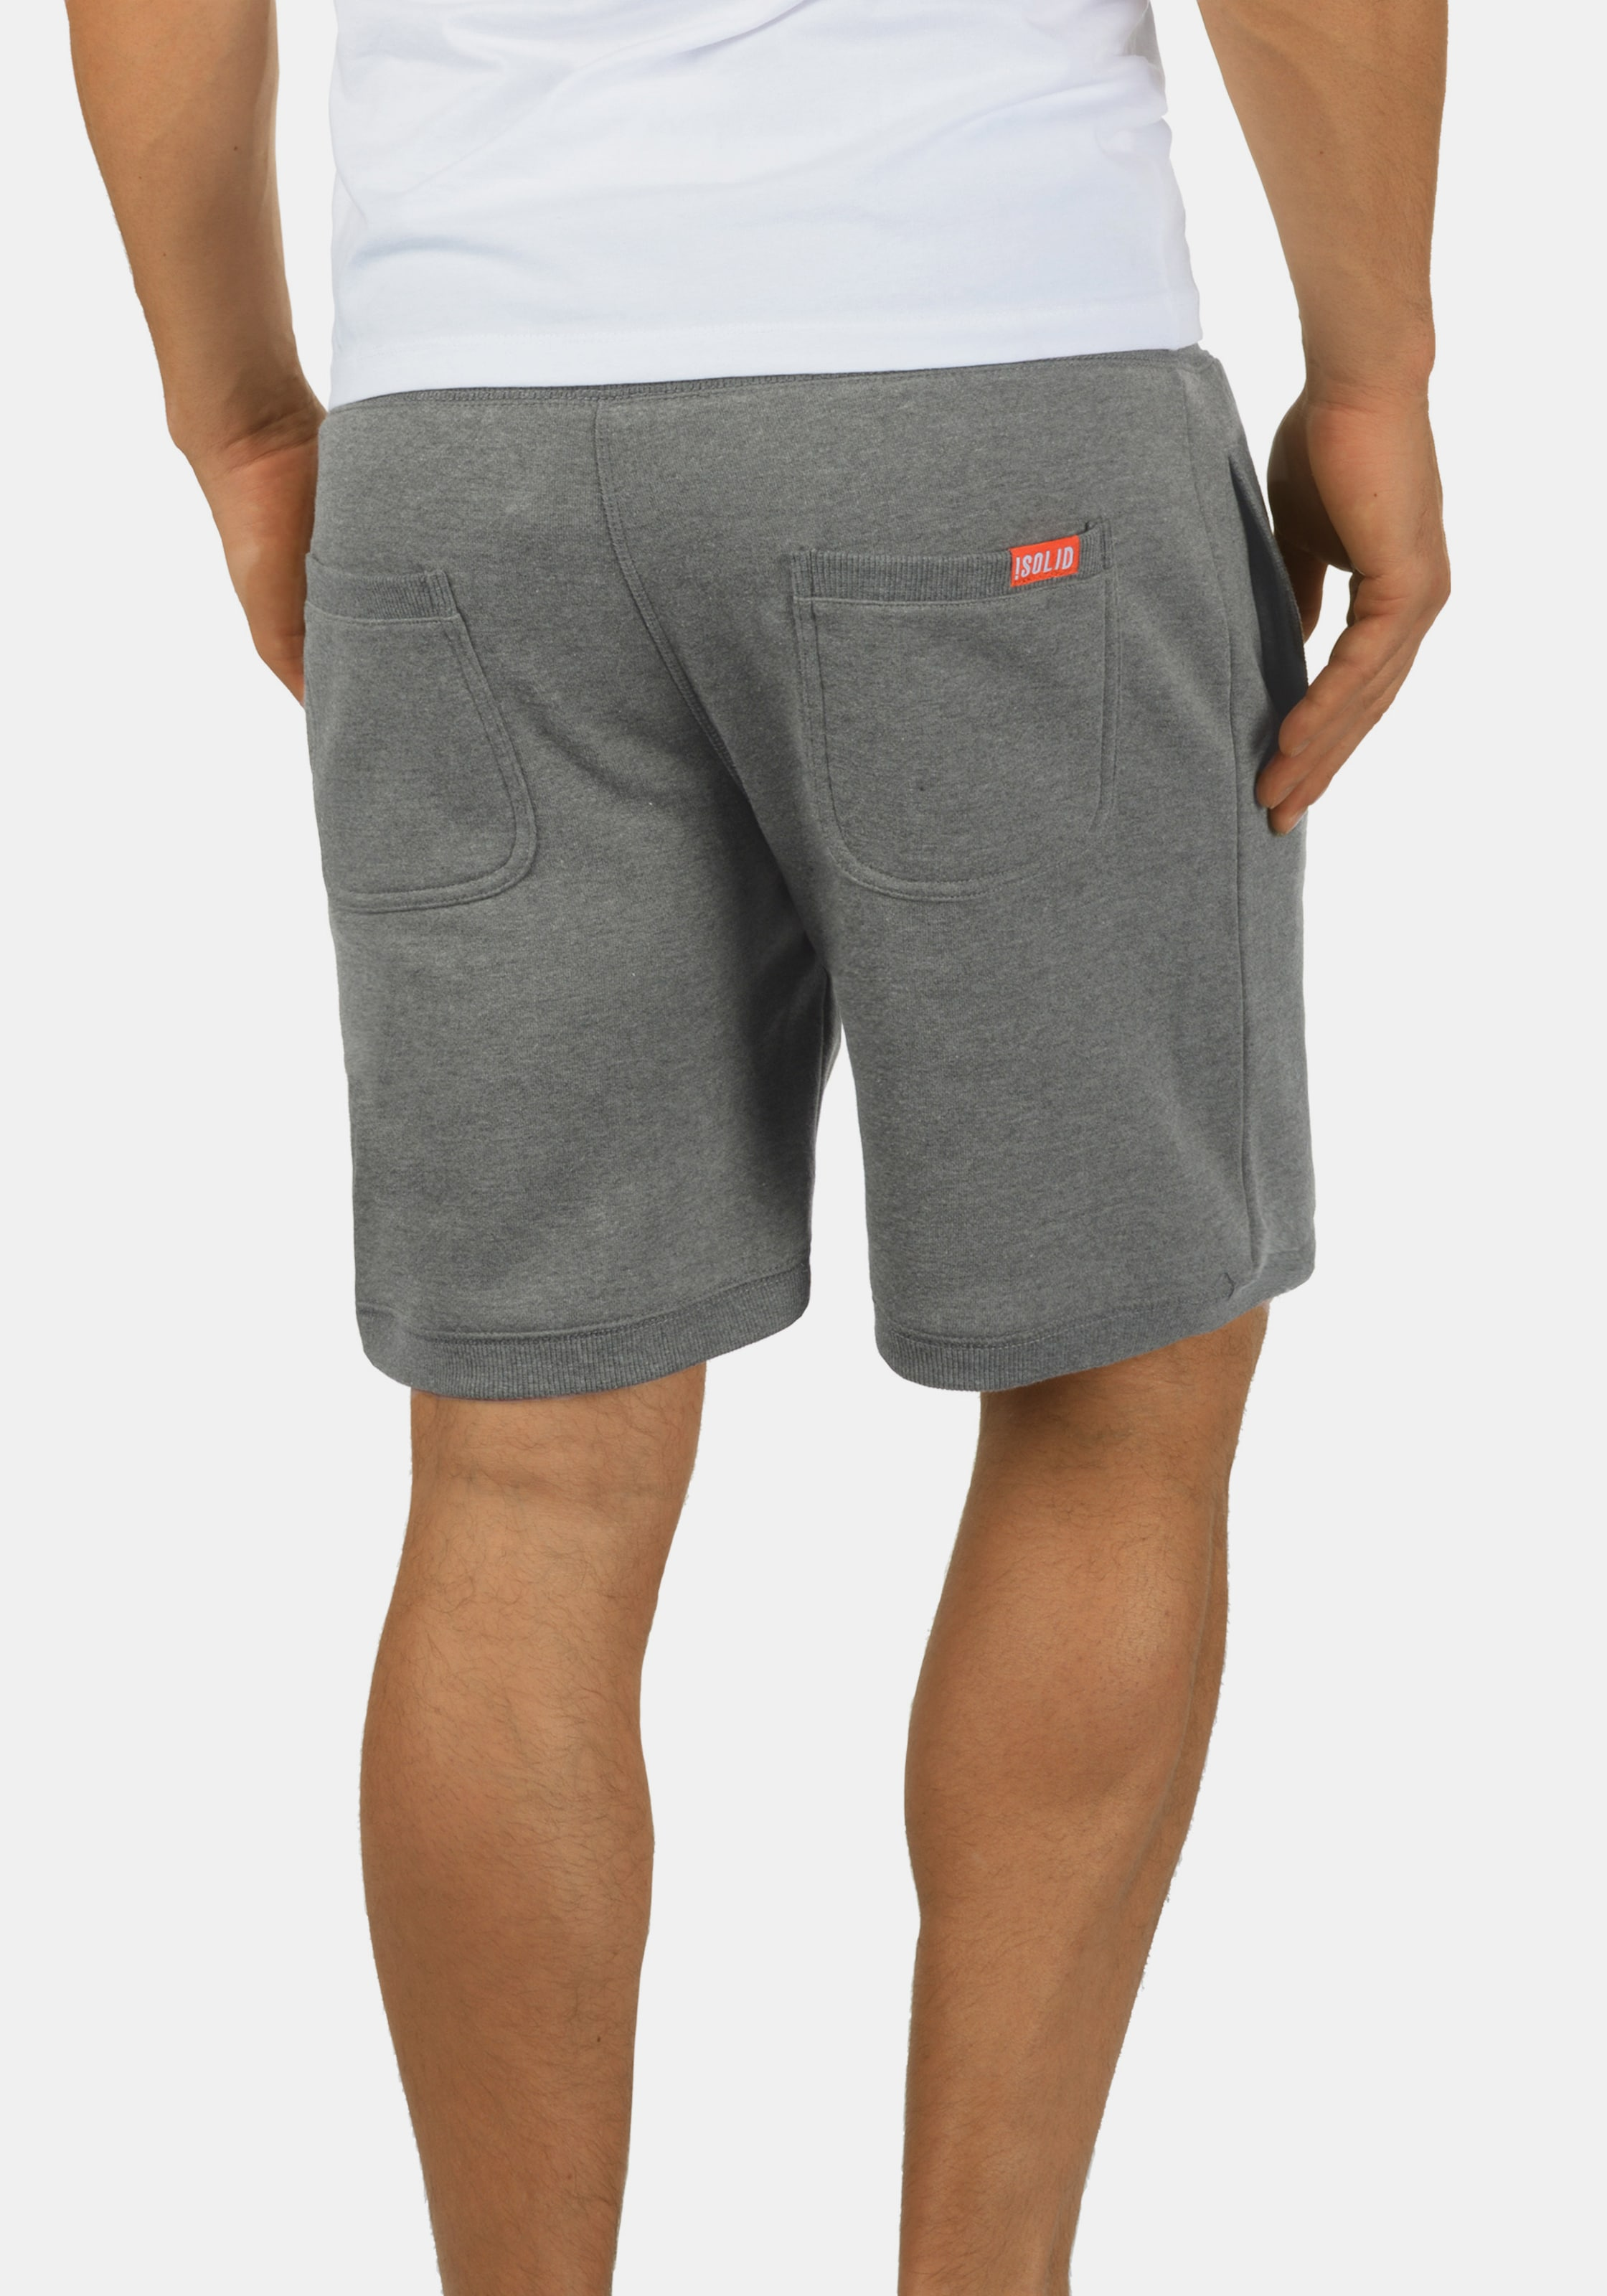 In Sweatshorts In Sweatshorts Grau solid solid 5LqS3c4RjA